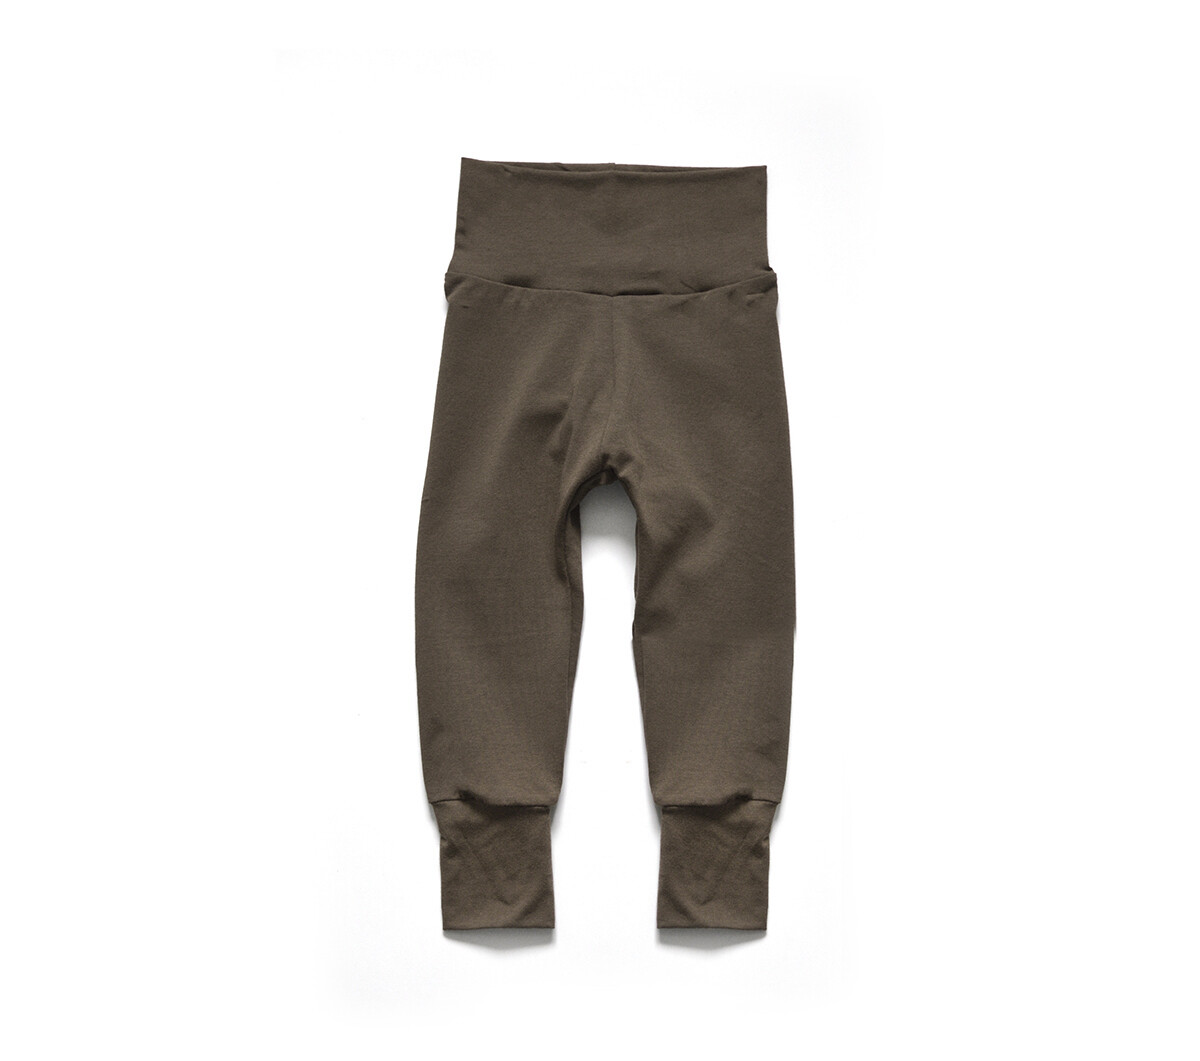 Little Sprout Pants™ in Earth | Grow With Me Leggings - Bamboo